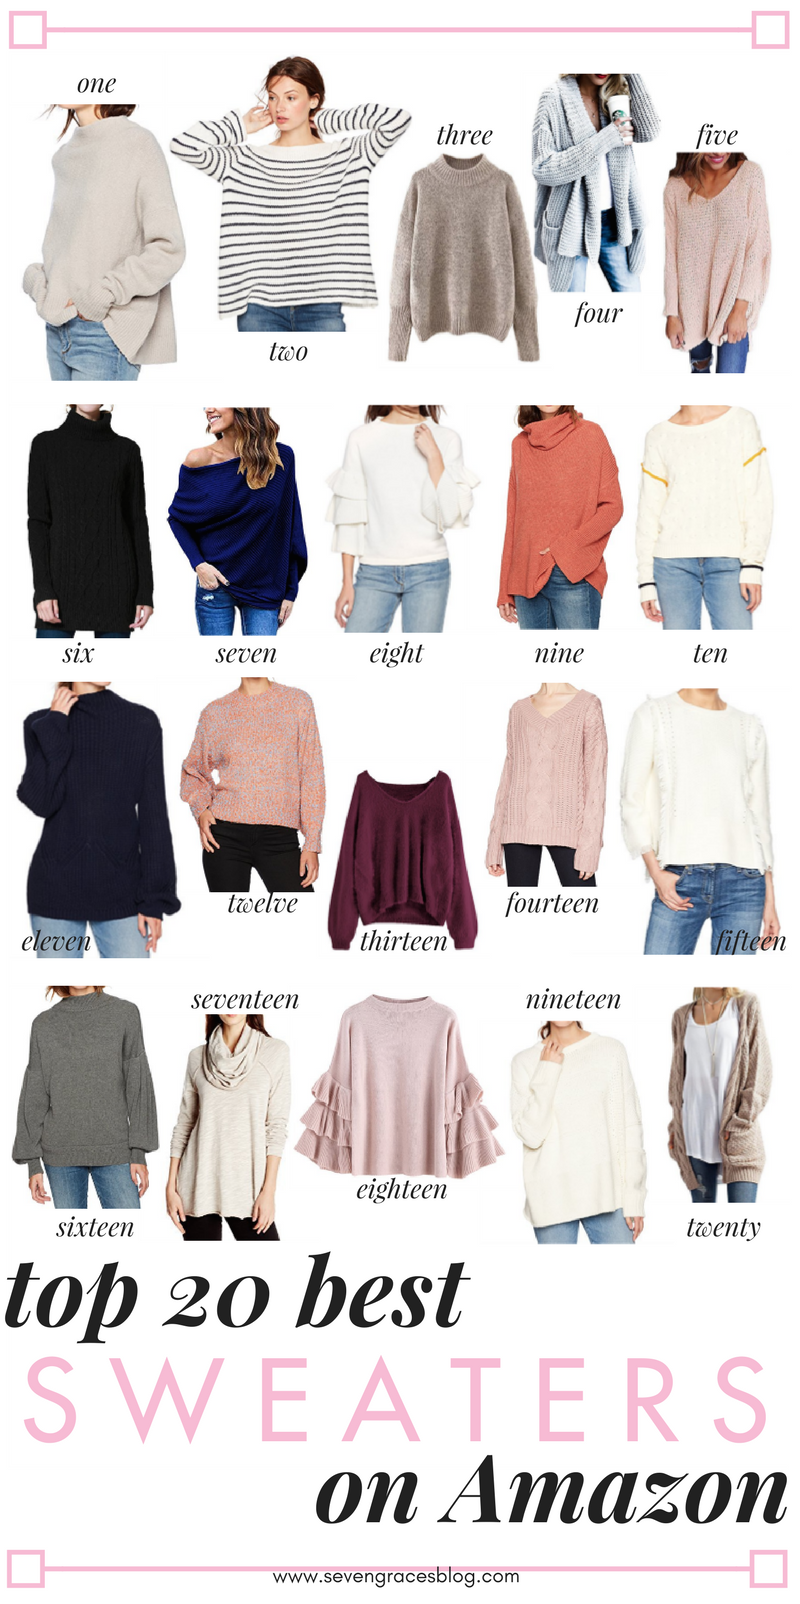 The best Amazon fashion sweaters. All the best sweaters you'll want this winter all from Amazon! The best sweaters for work or everyday wear.